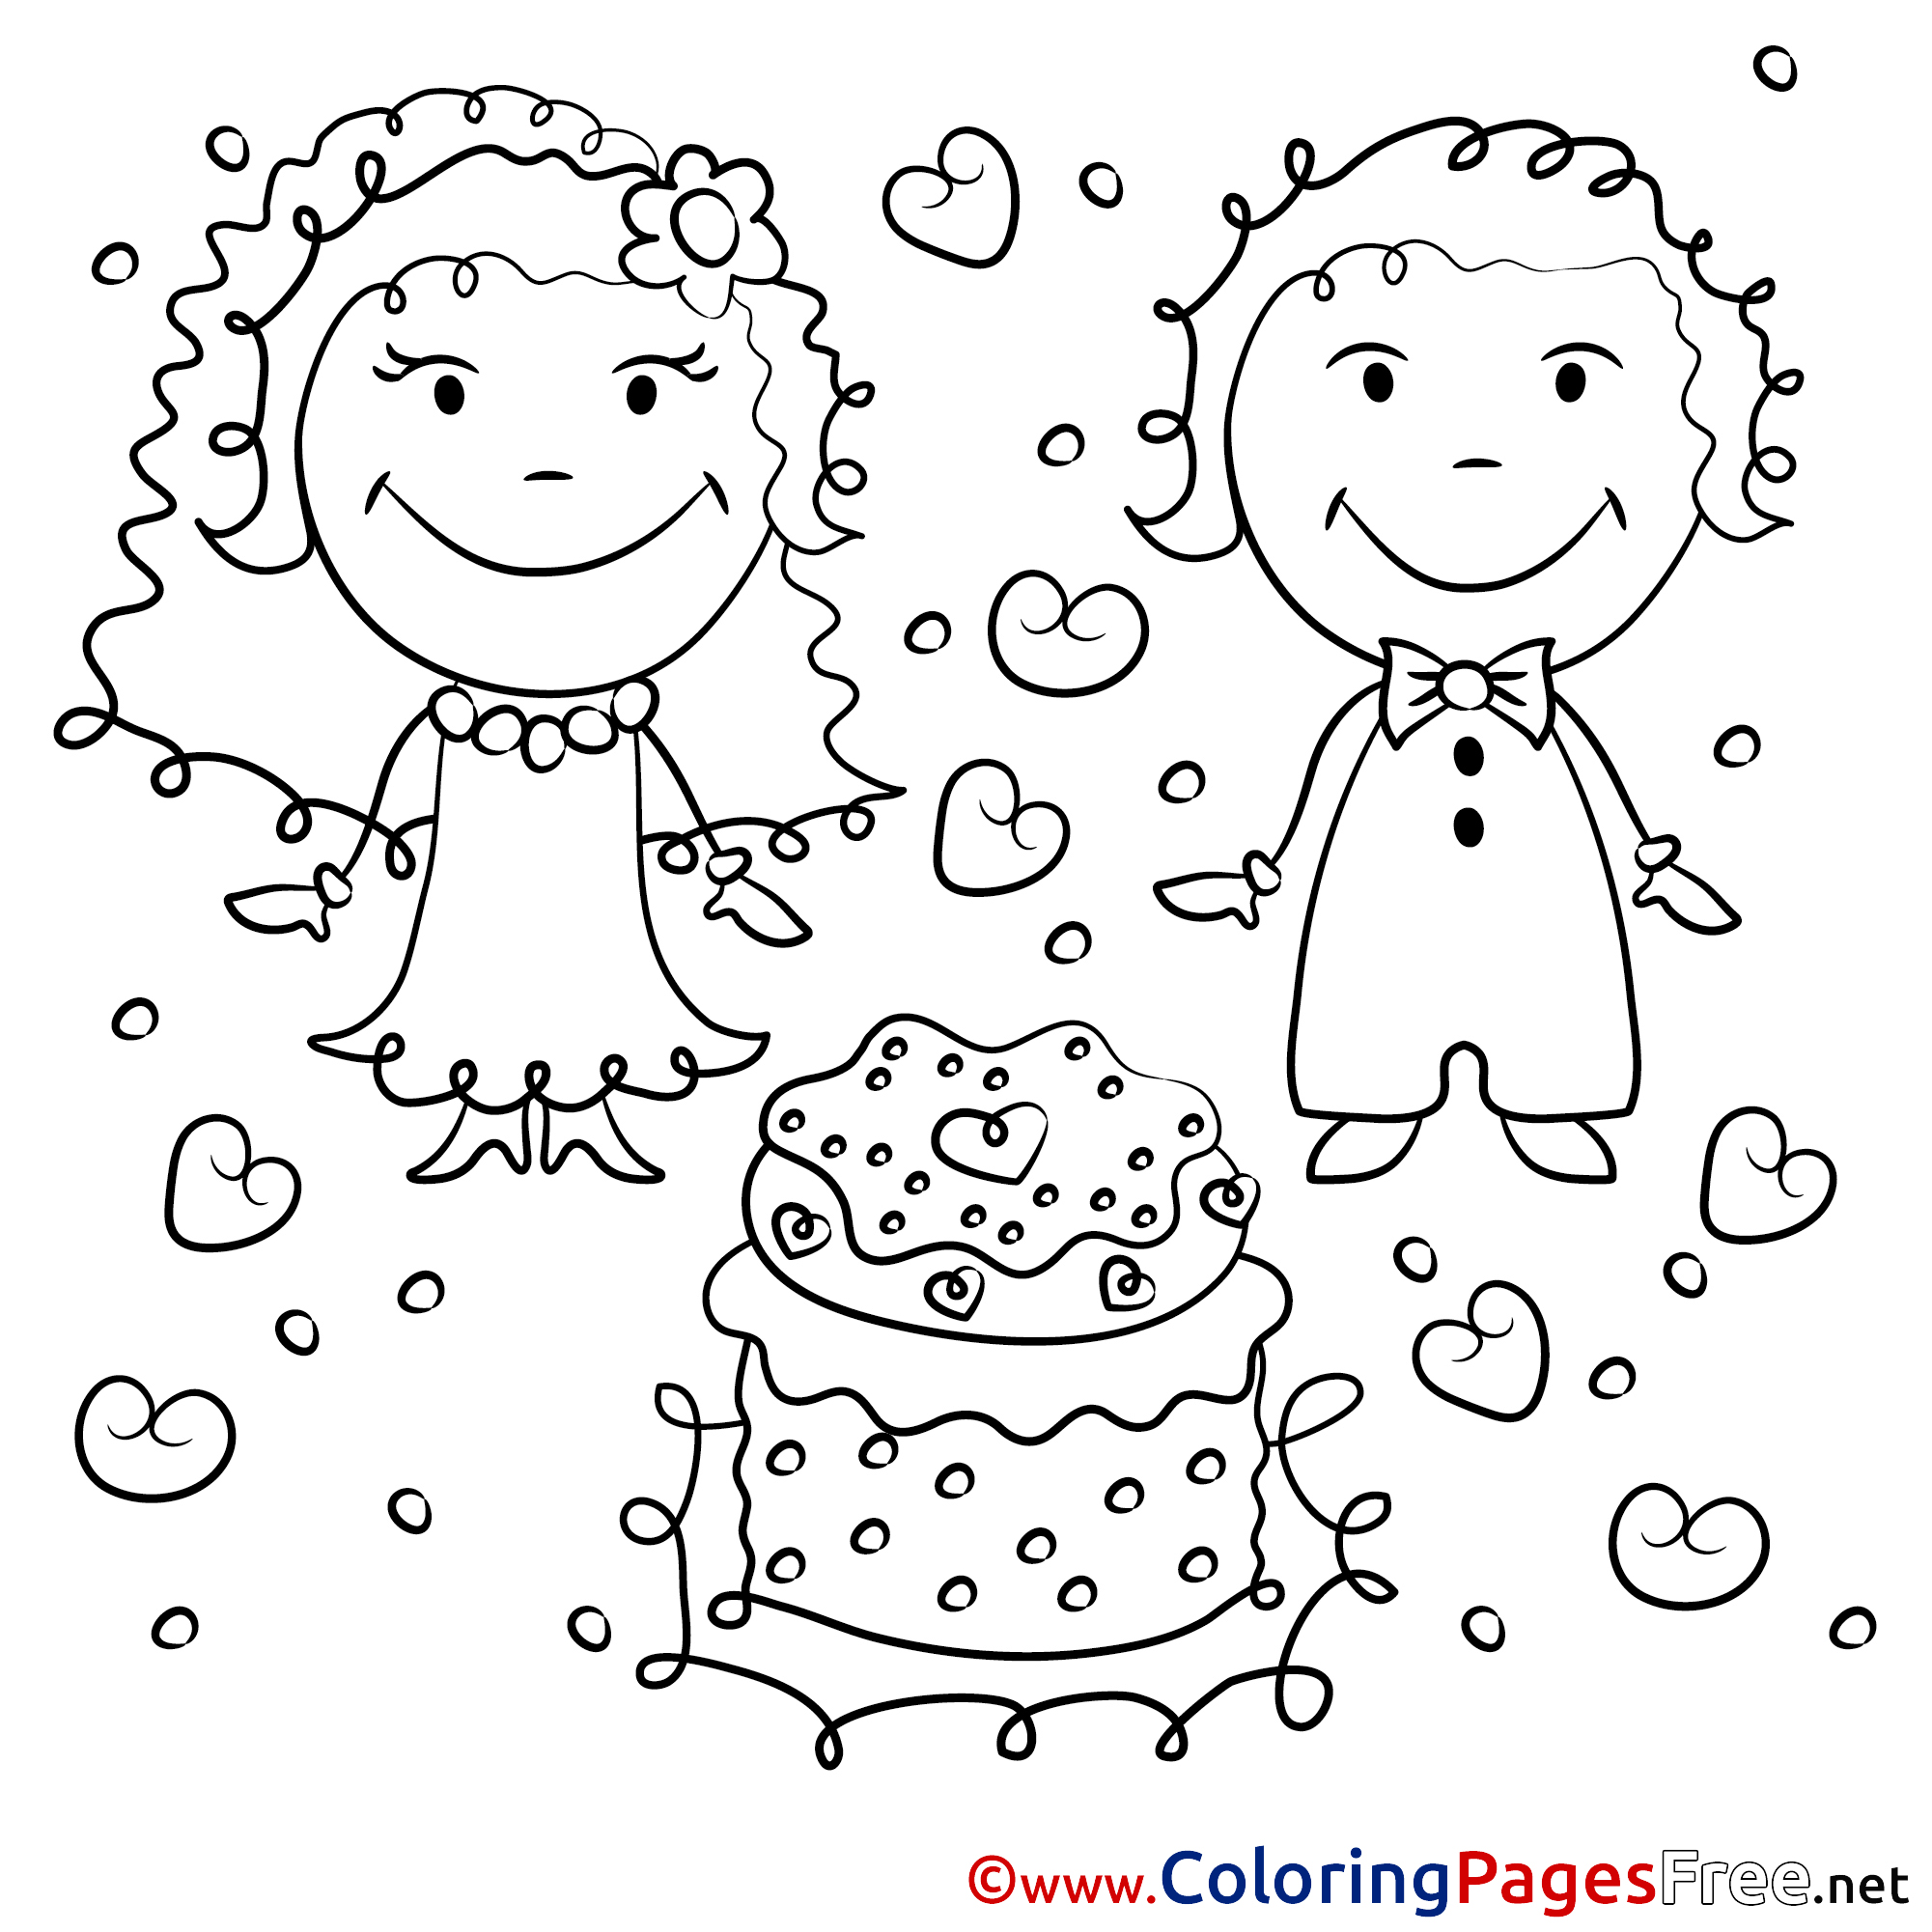 52 Astonishing Wedding Coloring Pages For Kids – Stephenbenedictdyson | 2001x2001